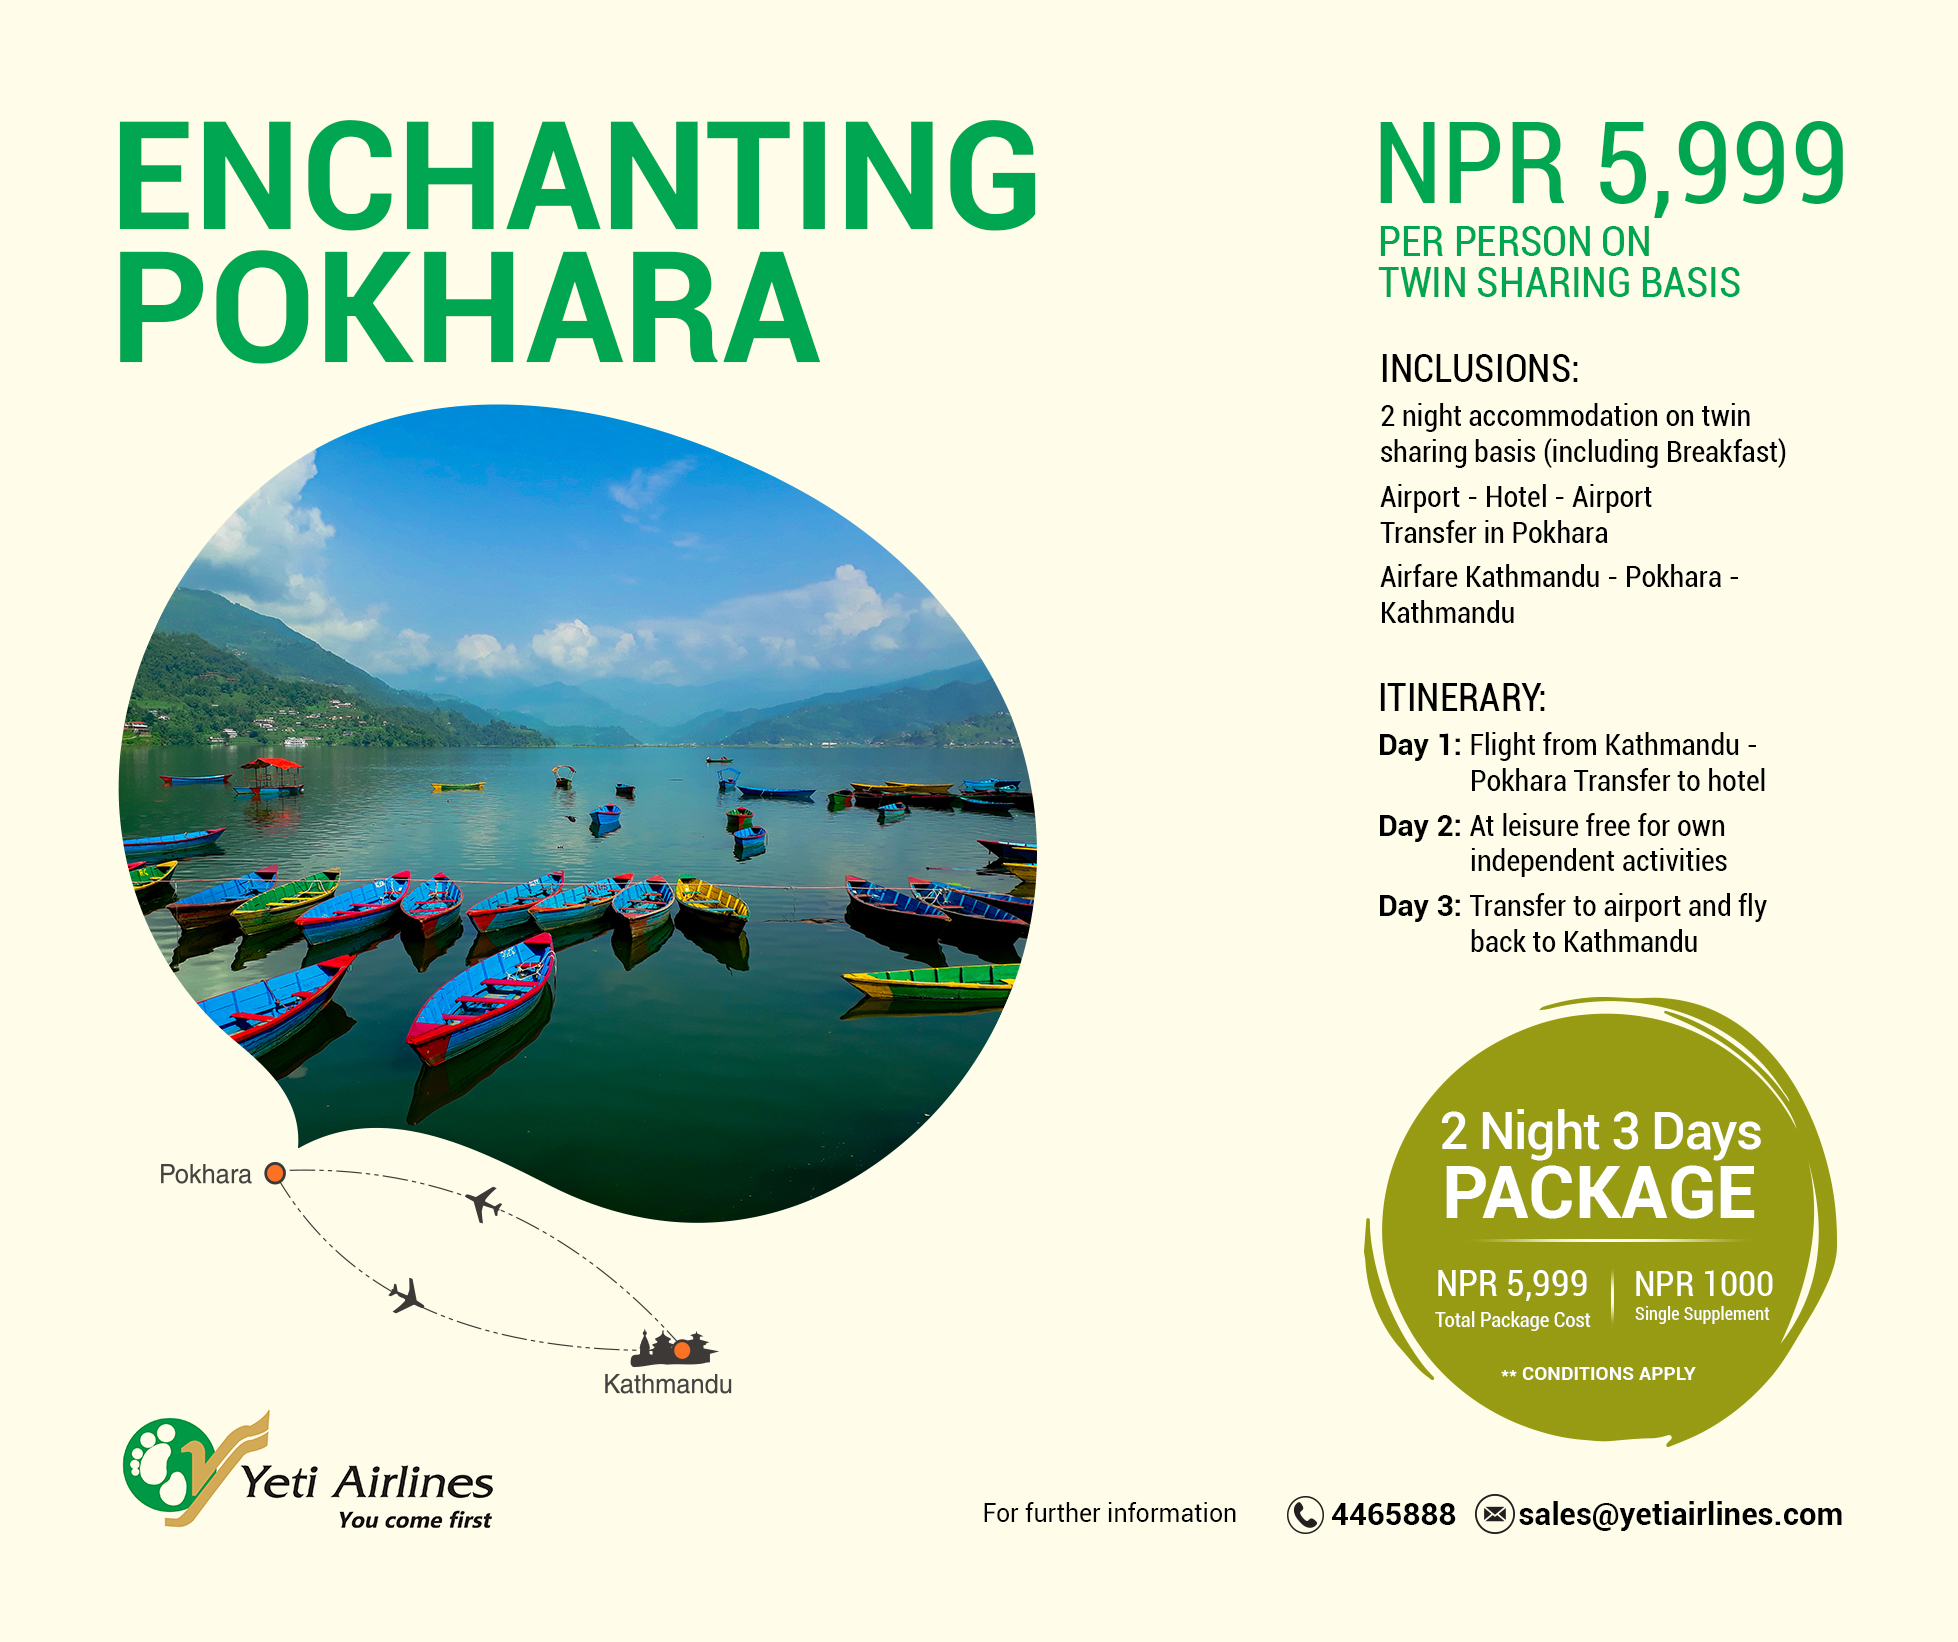 Enchanting Pokhara - 3 Star Category